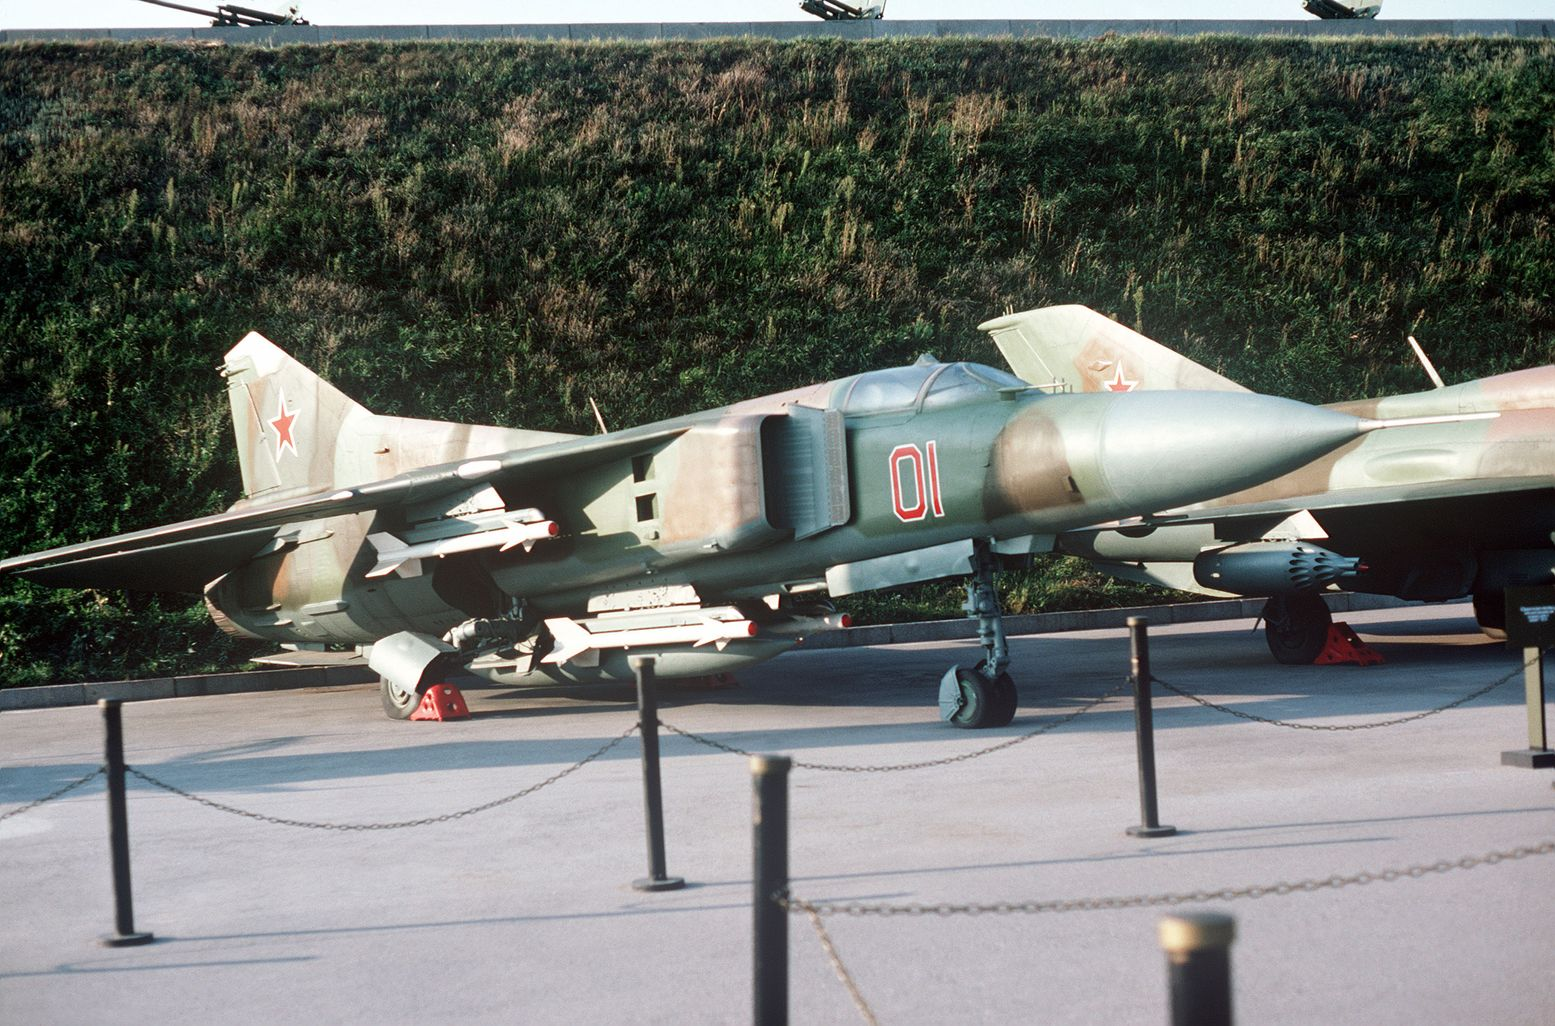 That Story of American F-15s Intercepting a Pilotless Soviet MiG-23